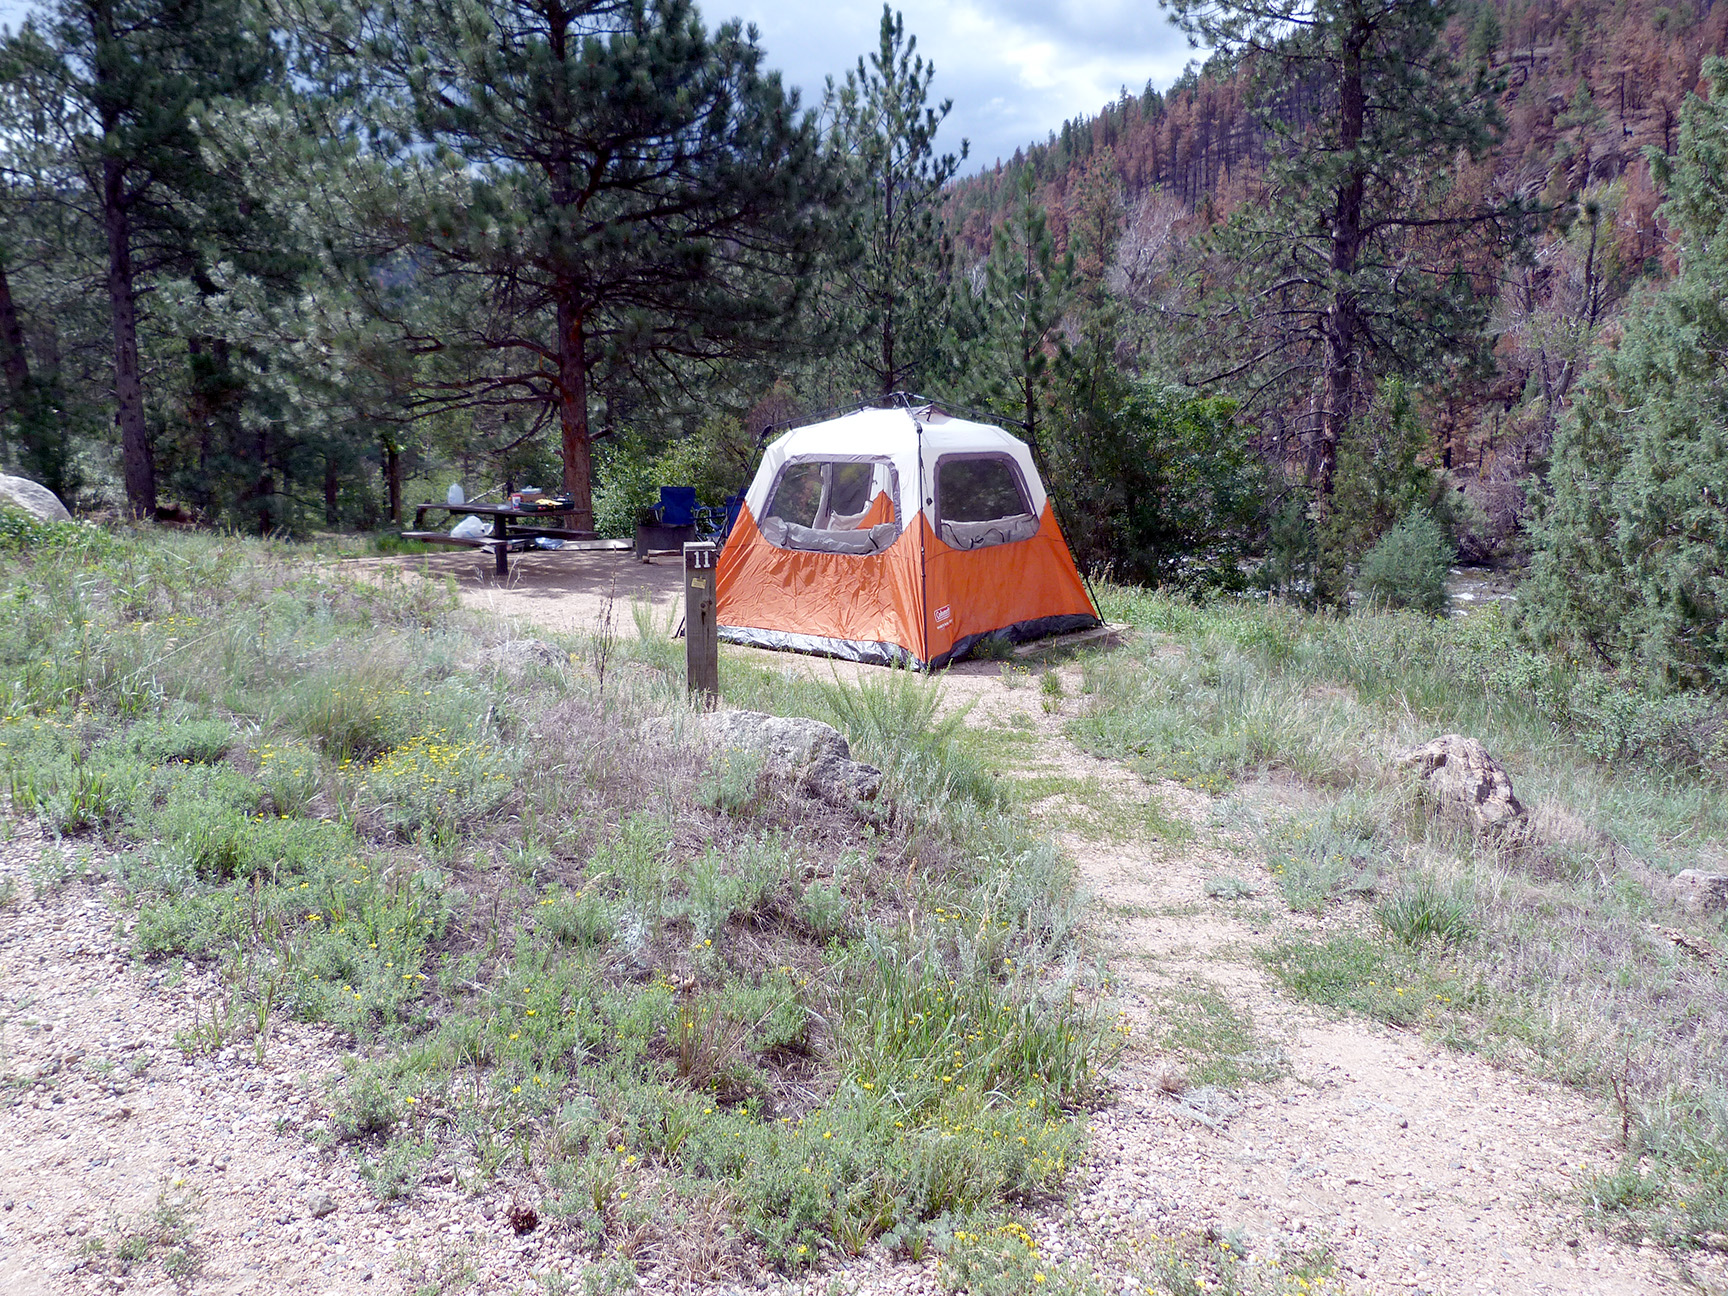 Camping Preparation Tent Camping List